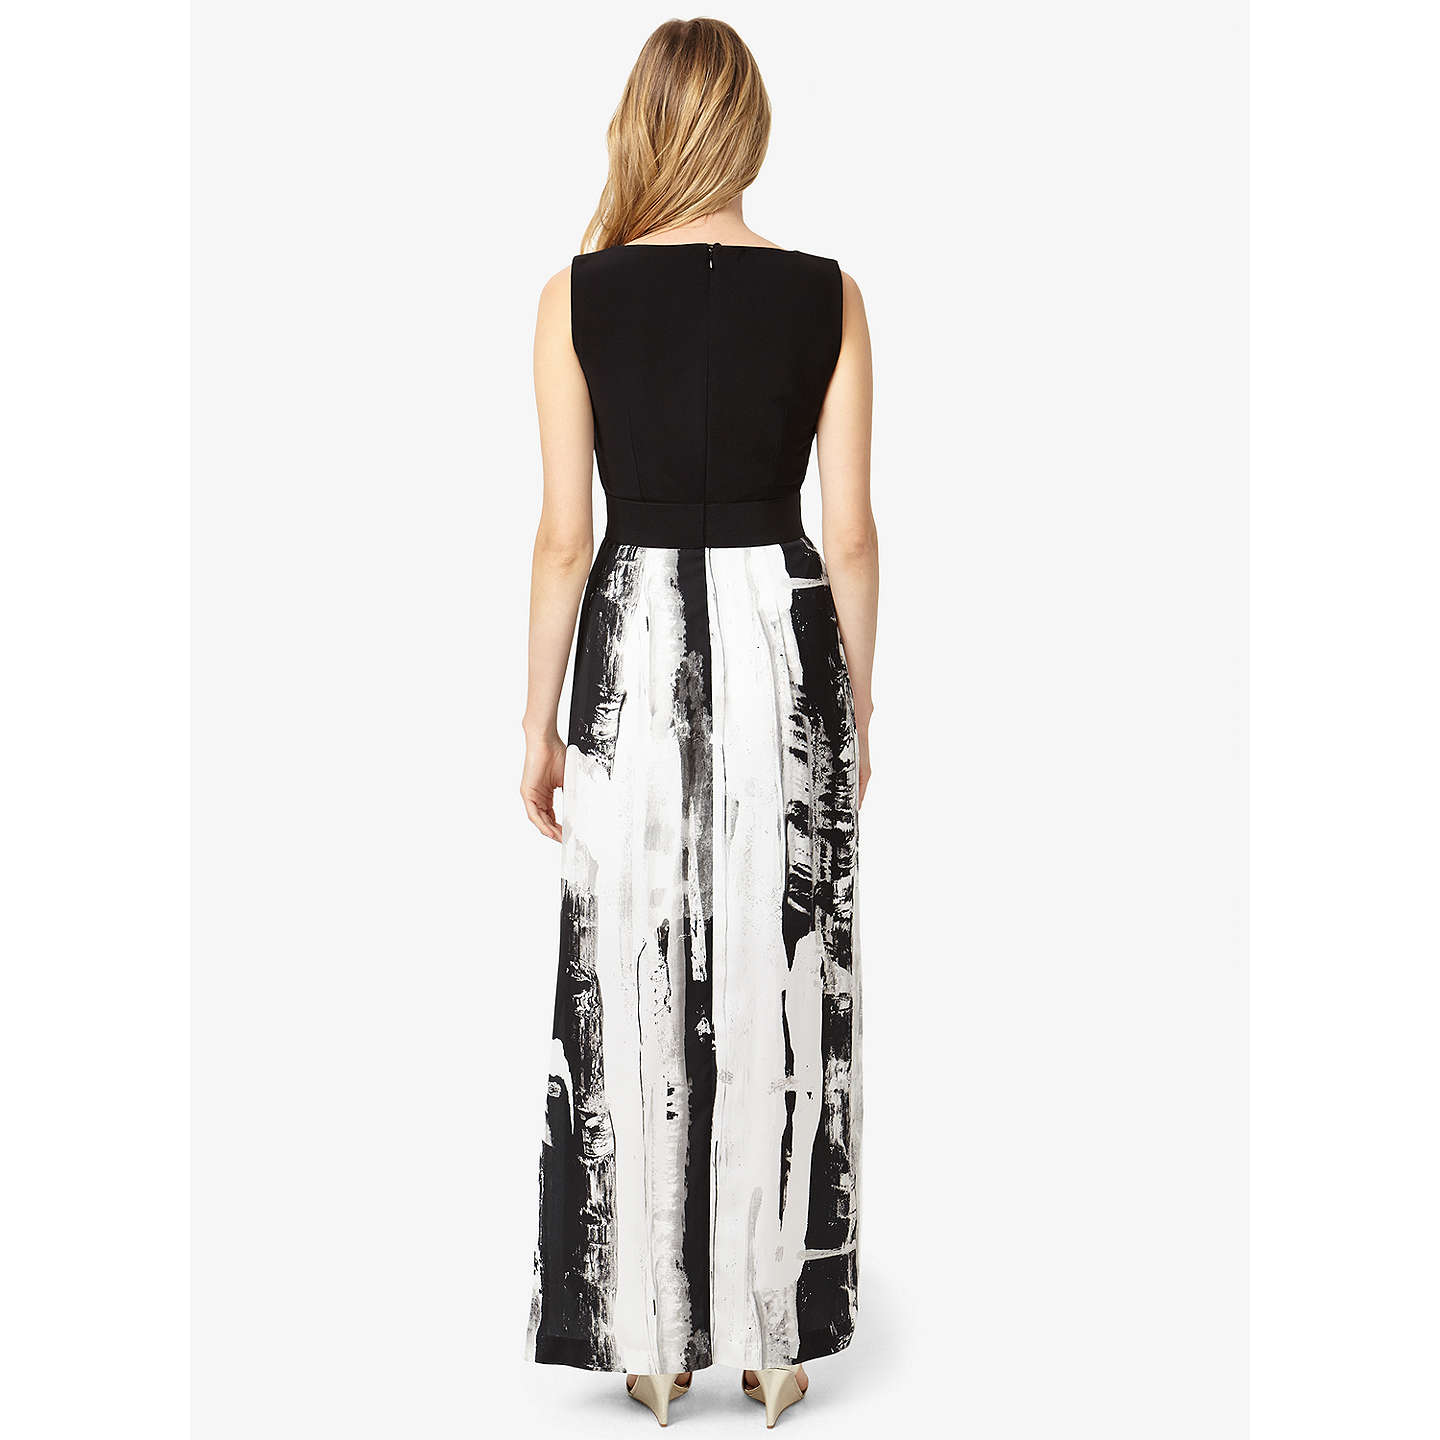 BuyPhase Eight Claireen Maxi Dress, Black/Multi, 6 Online at johnlewis.com